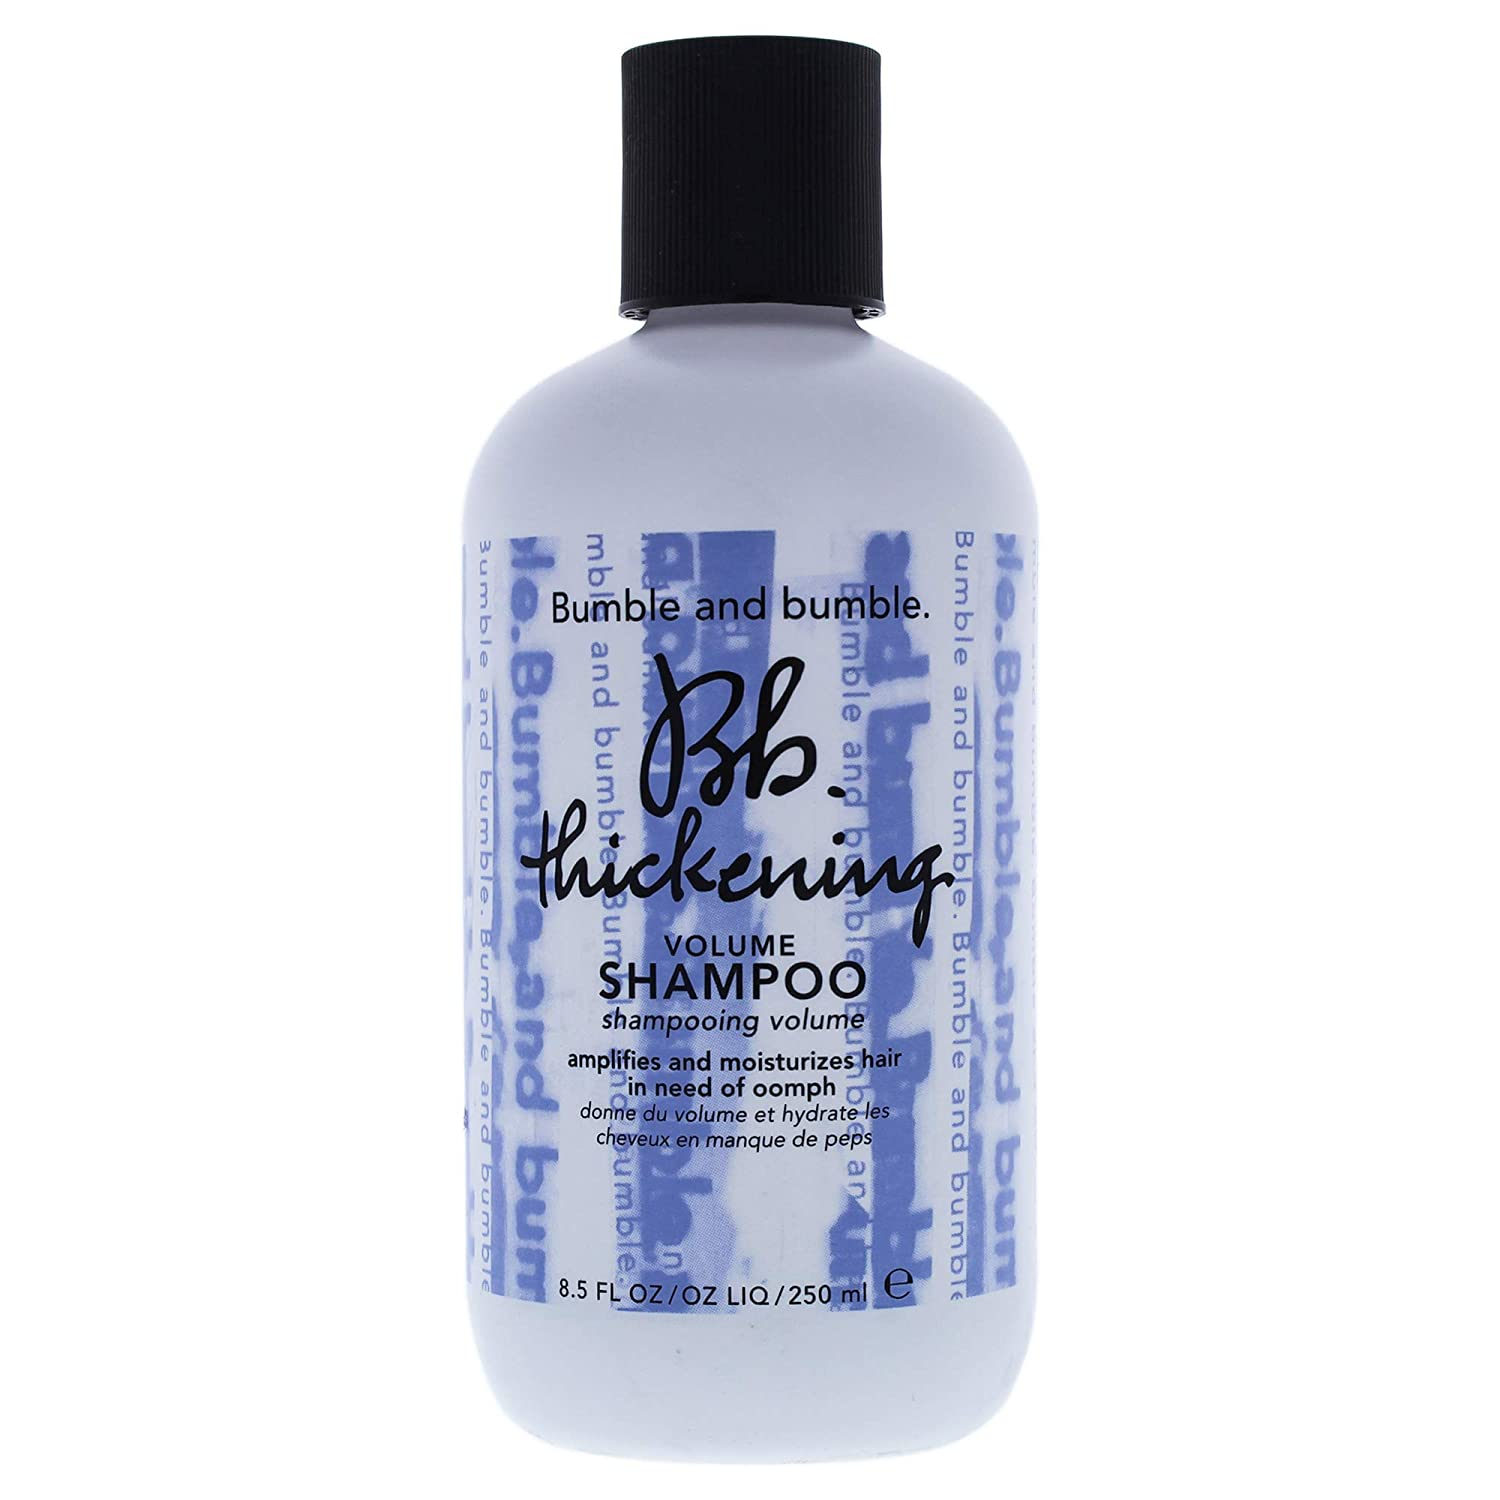 Bumble And Bumble Thickening Volume Shampoo 8 5 Oz Bumble And Bumble Hair Products Beauty